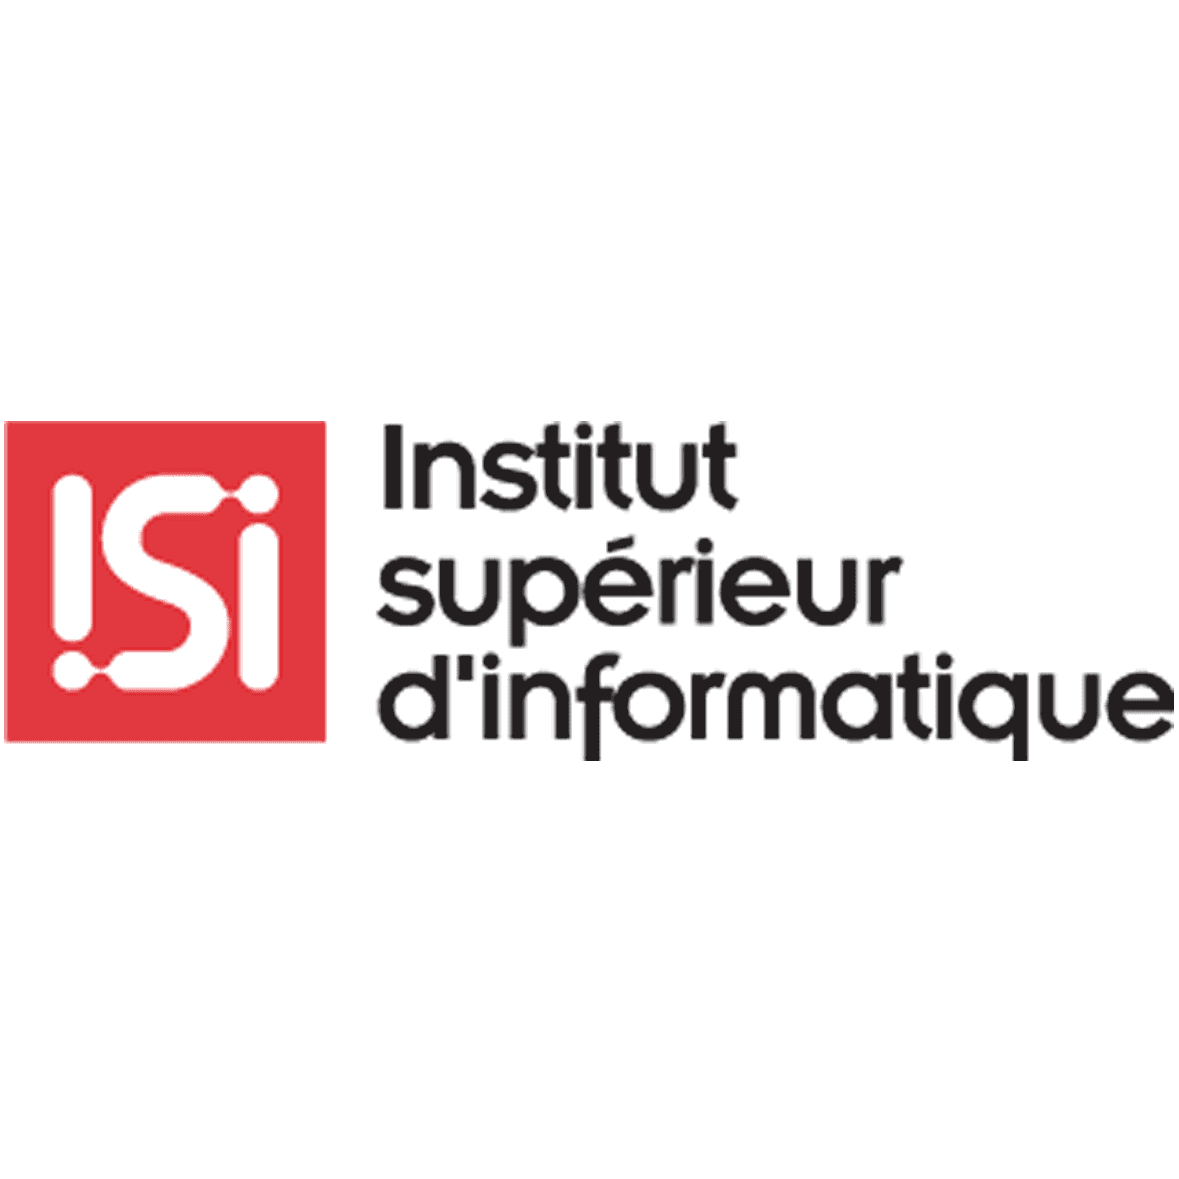 INSTITUTE SUPERIOR DINFORMATIQUE